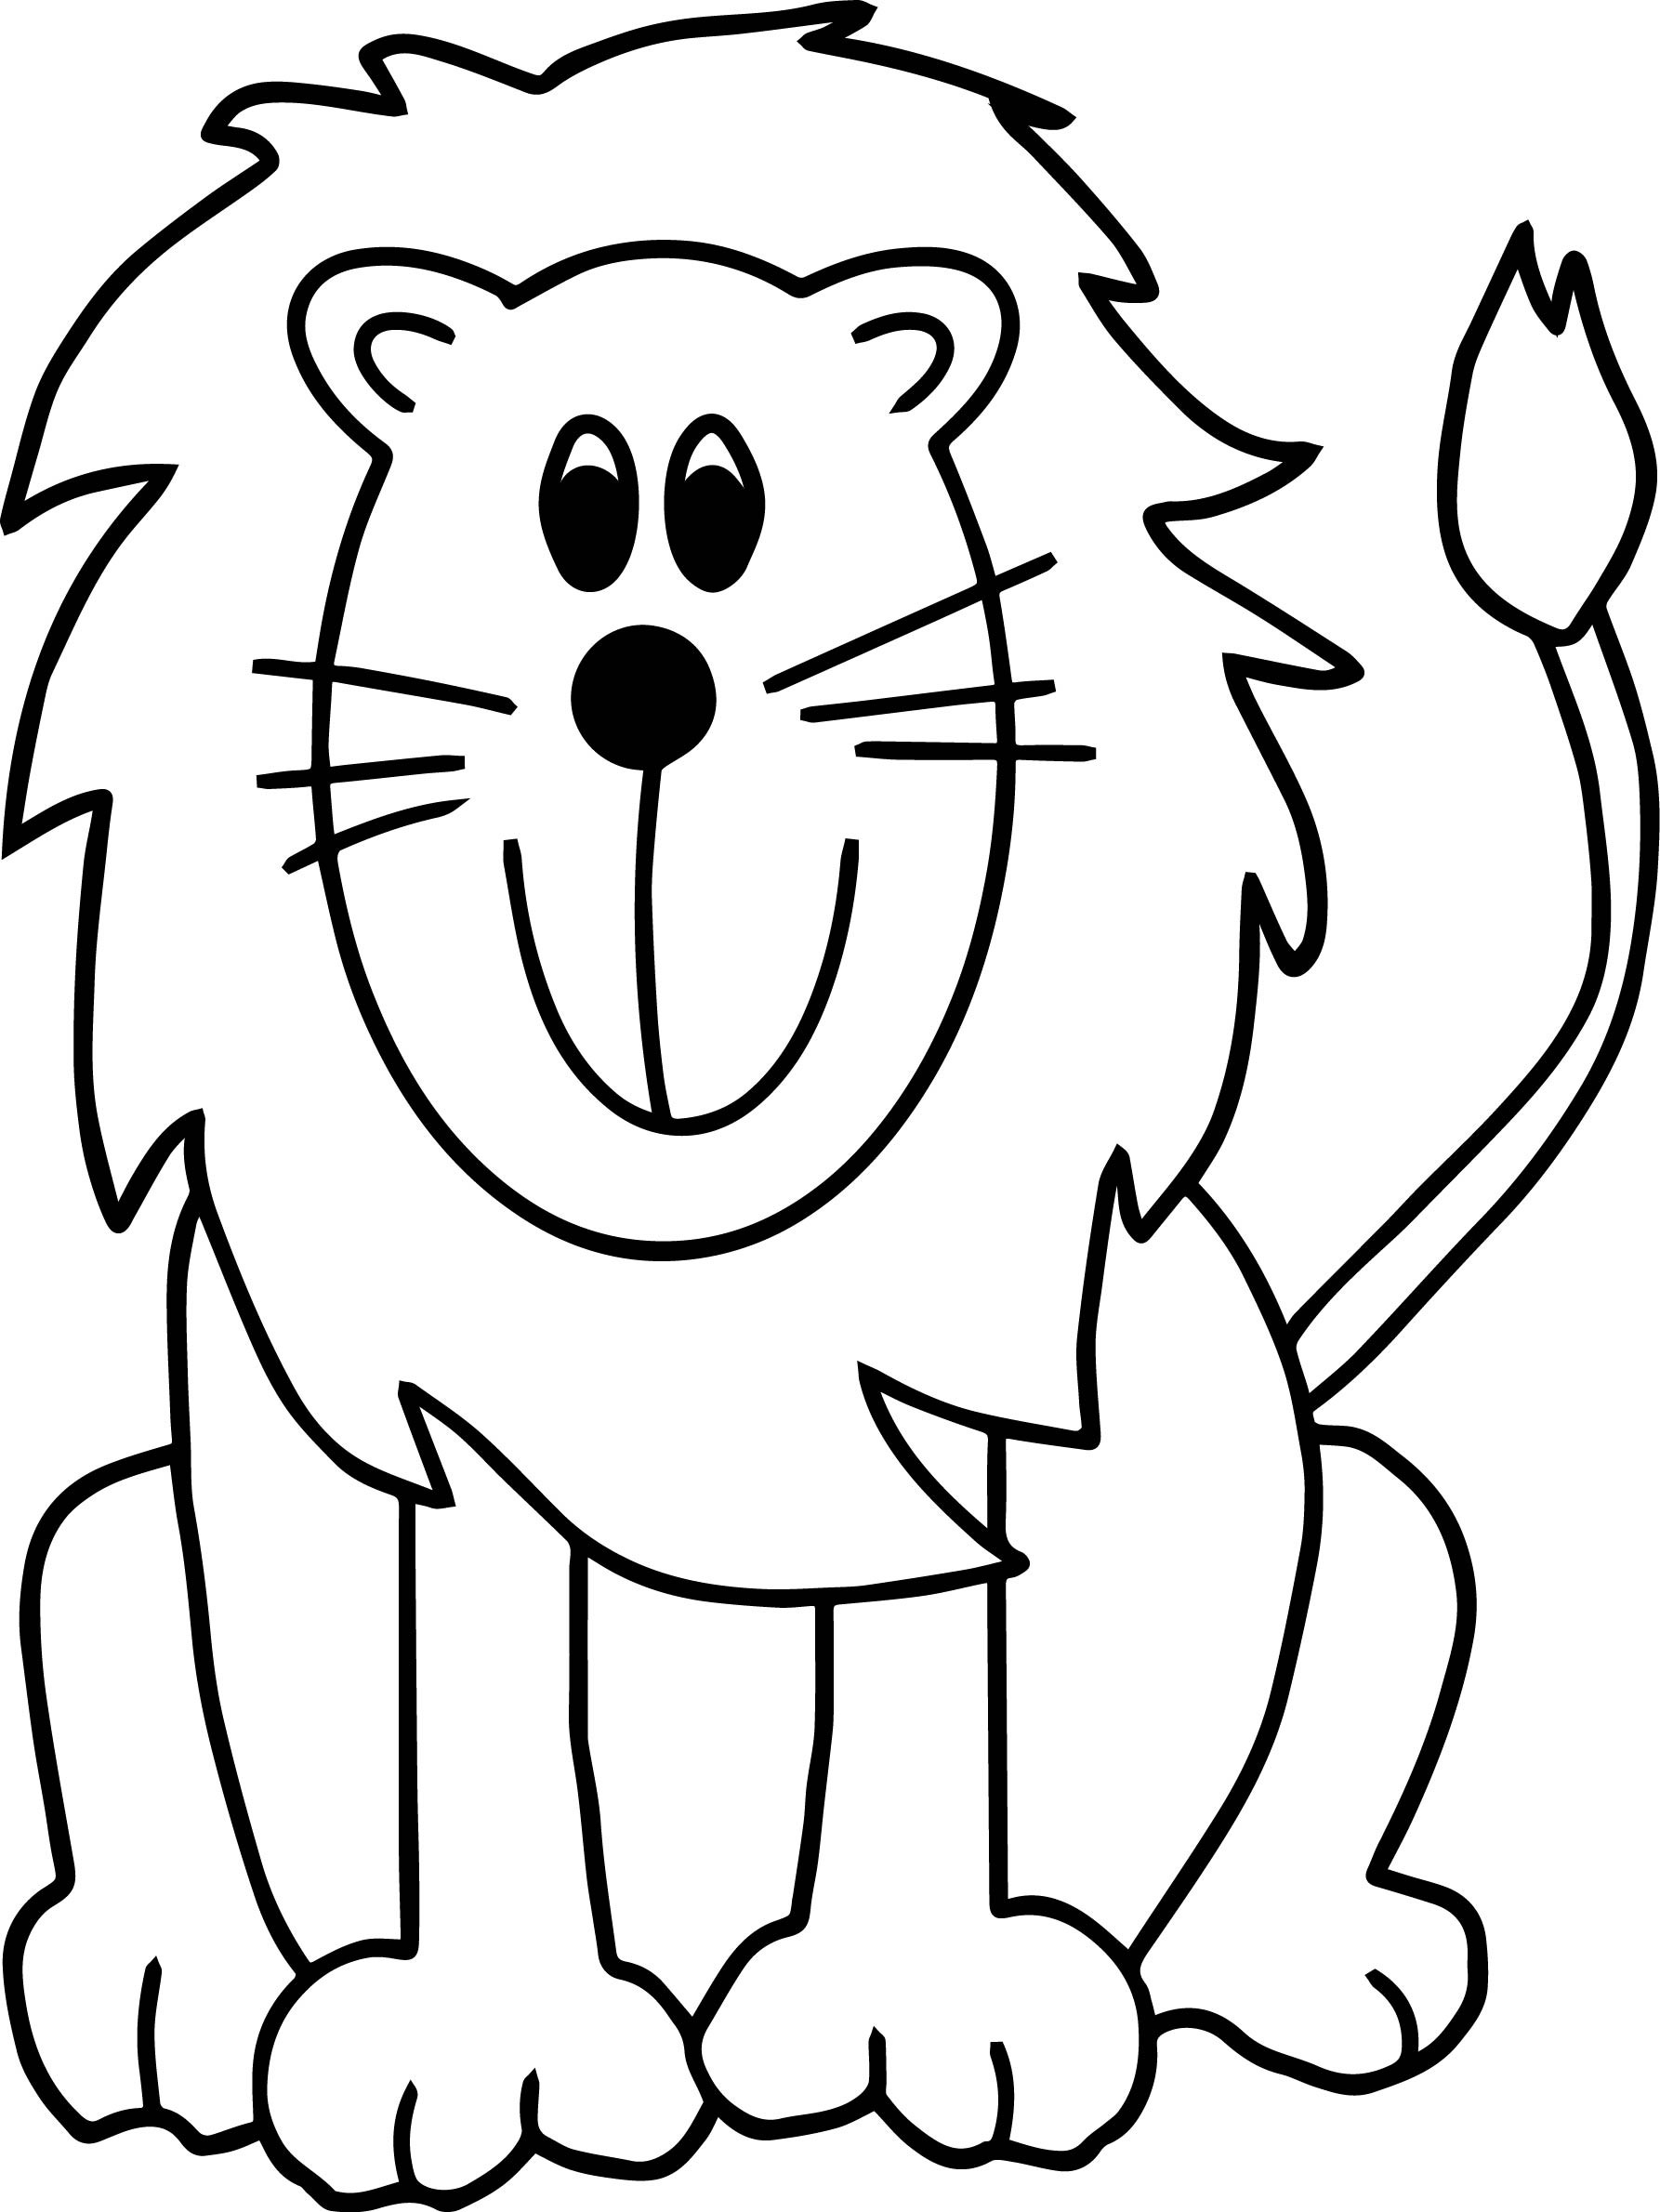 zoo coloring book zoo coloring pages free download on clipartmag zoo coloring book